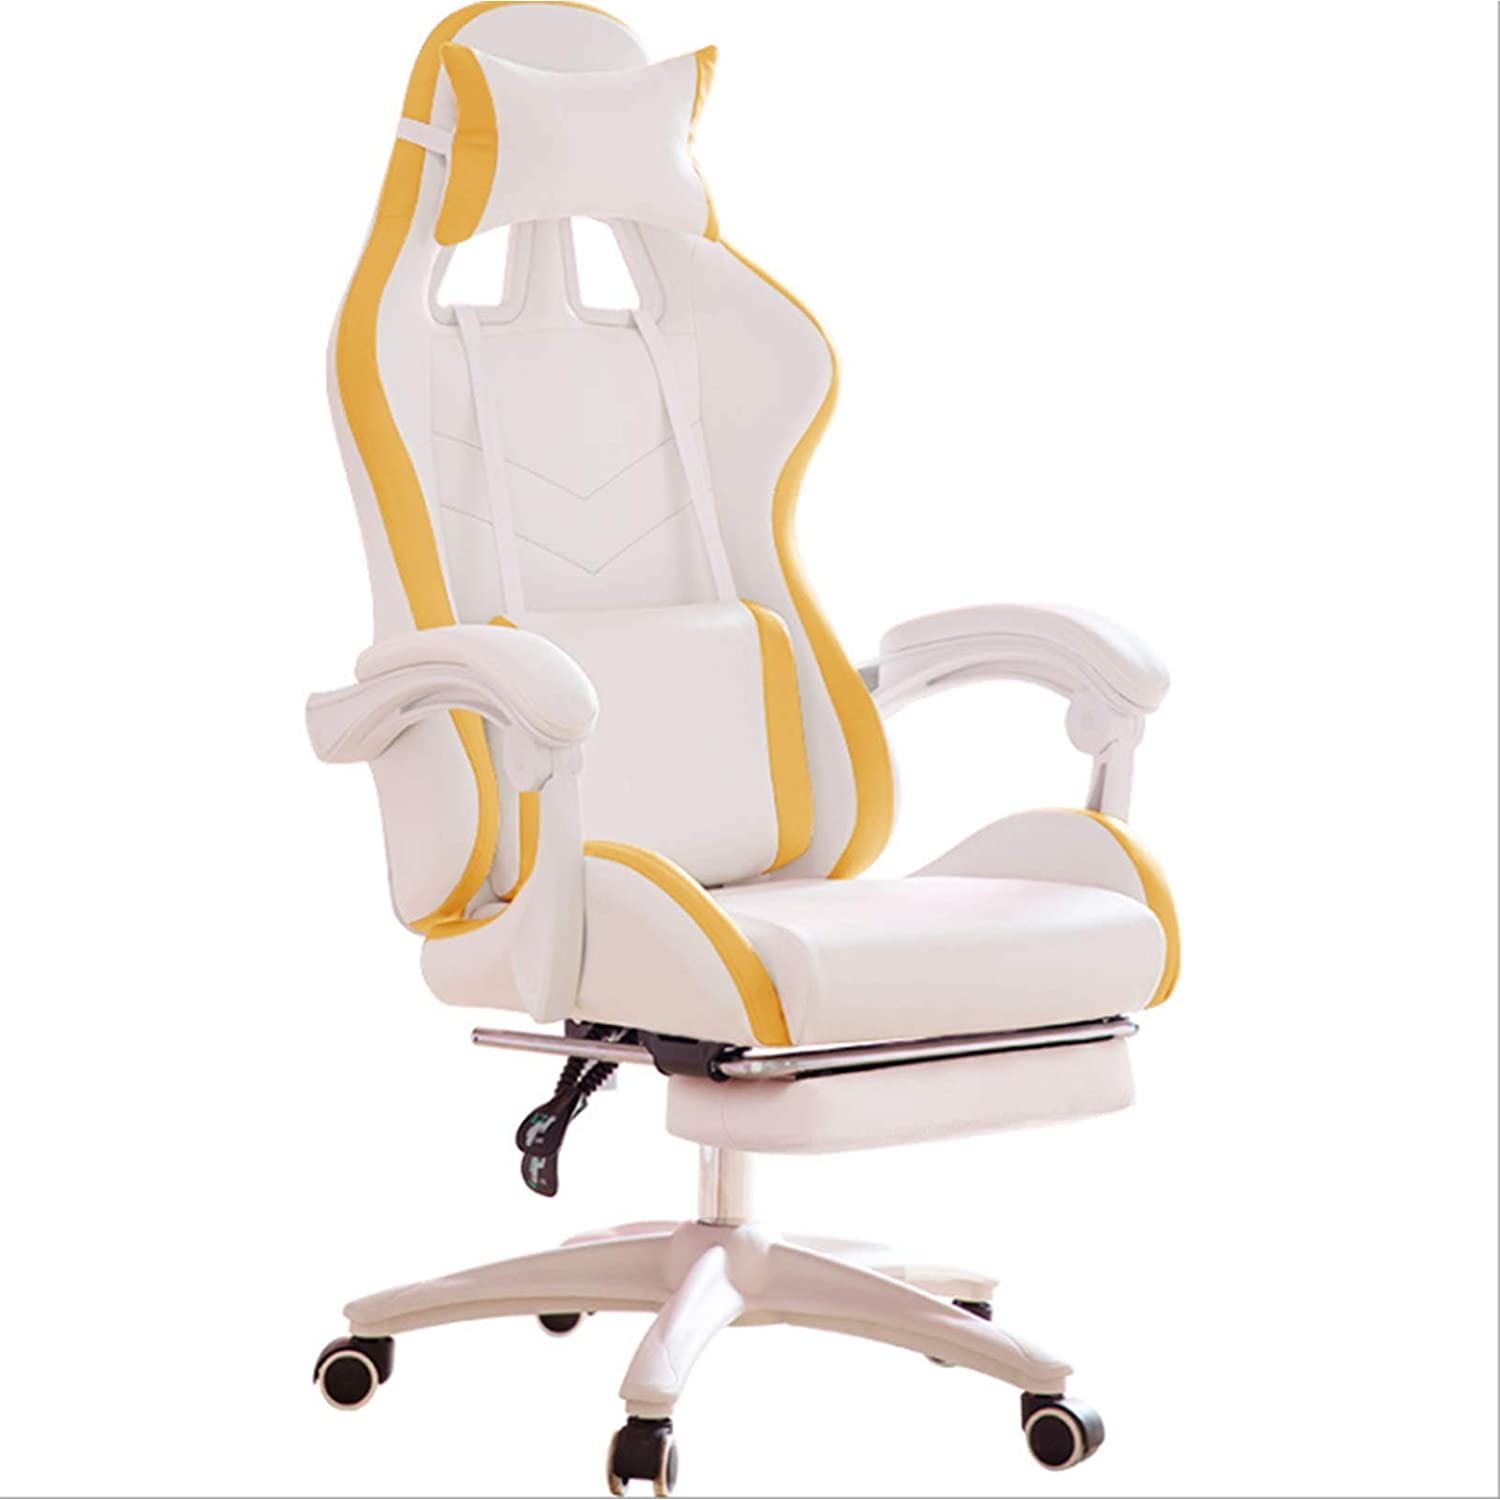 Gaming Office Chair Computer Video Ergonomic Attention brand B Game 2021 model